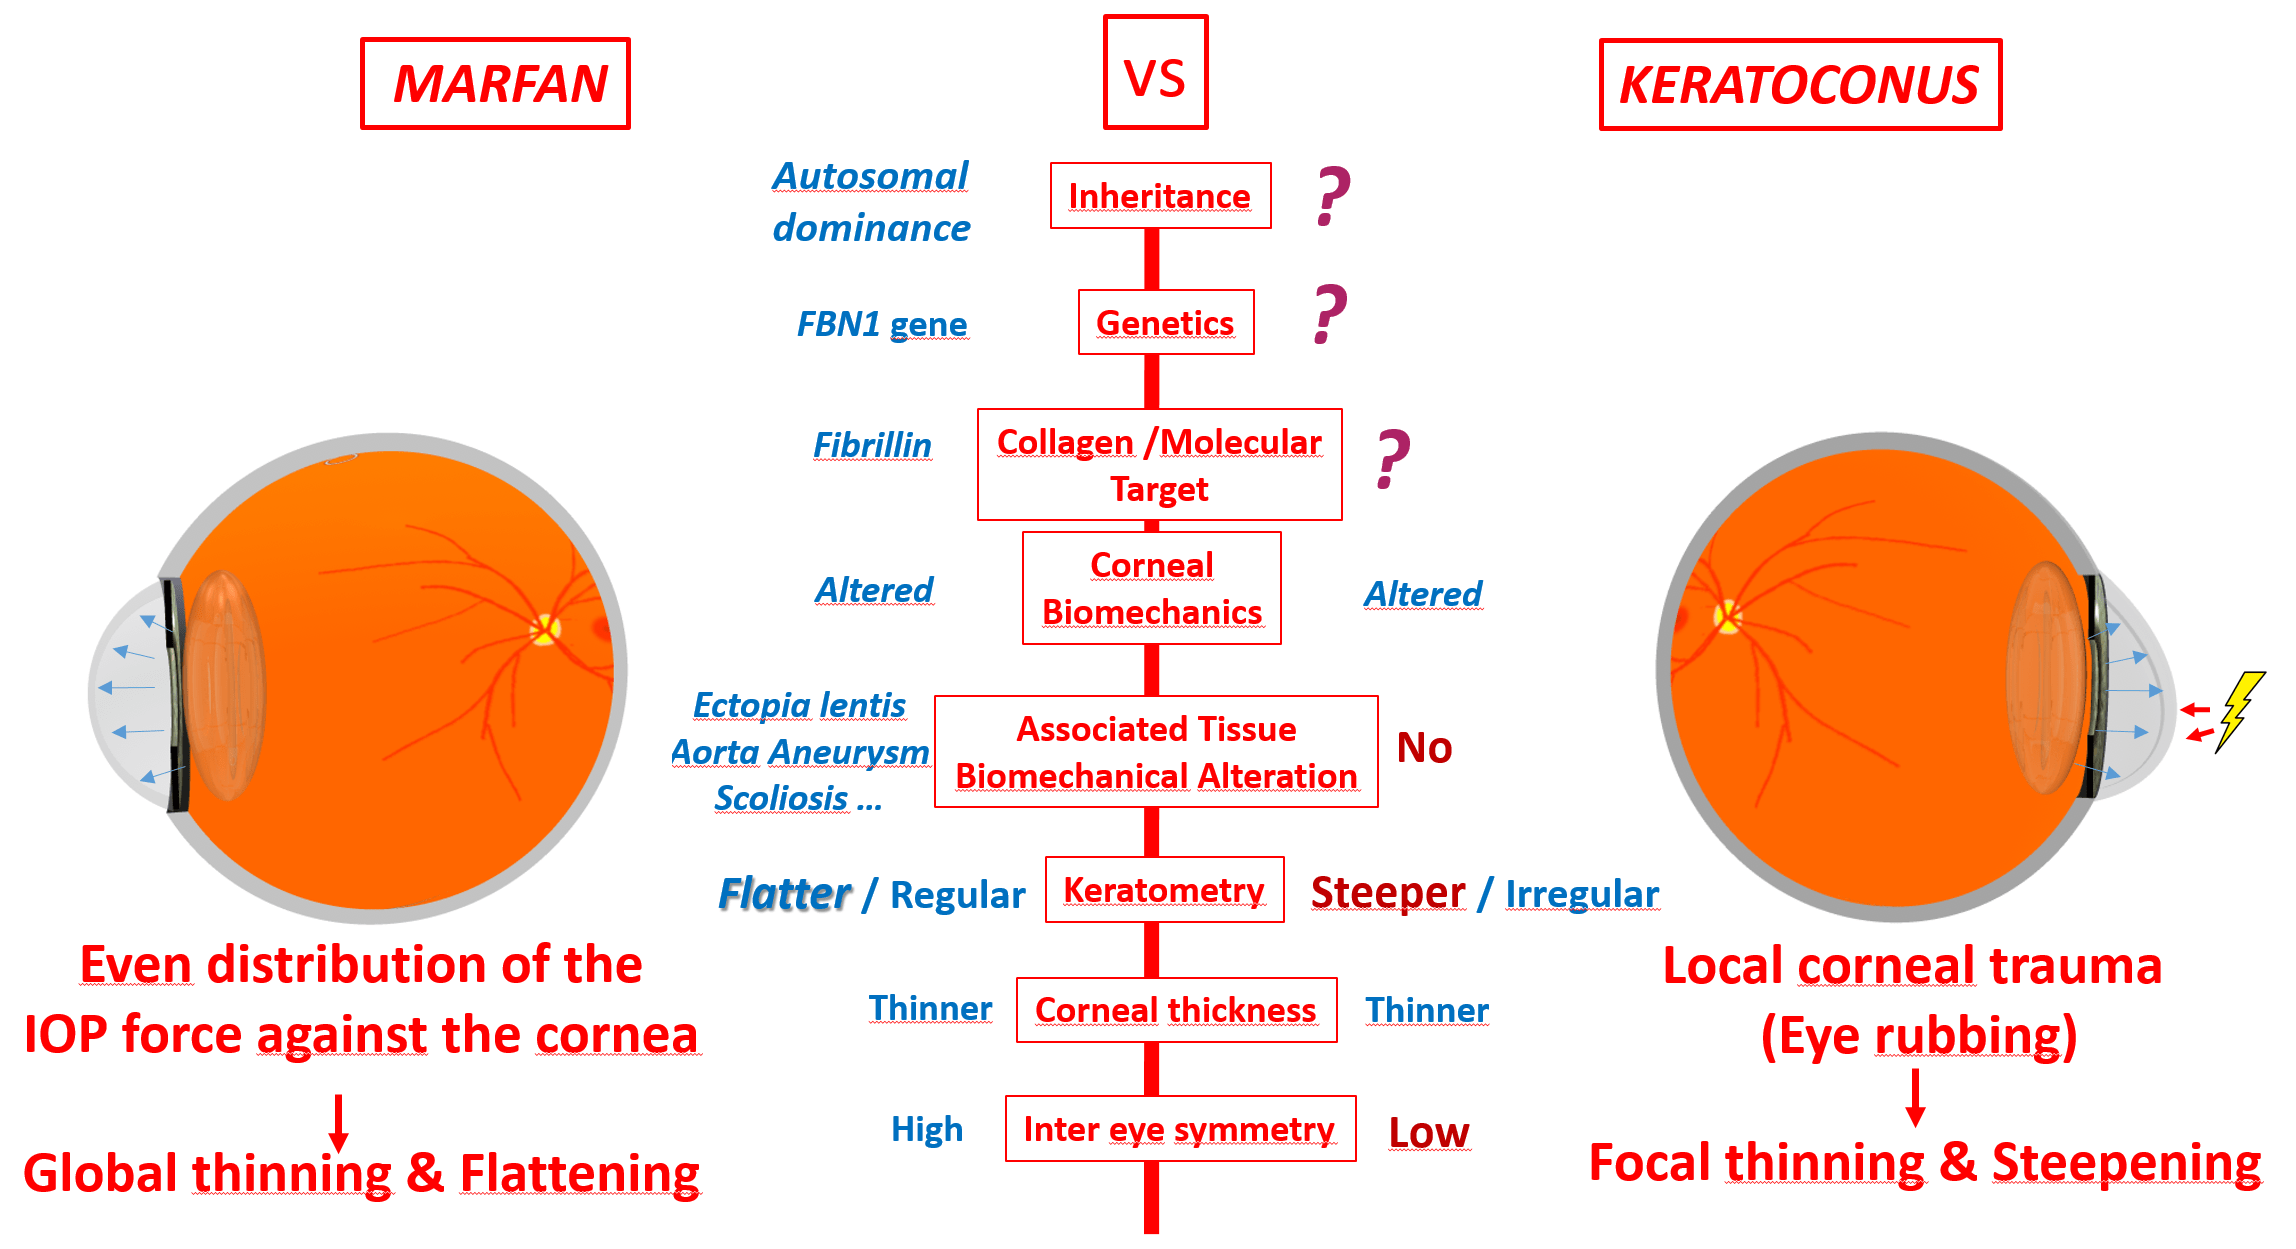 marfan vs keratoconus defeatkeratoconus.com